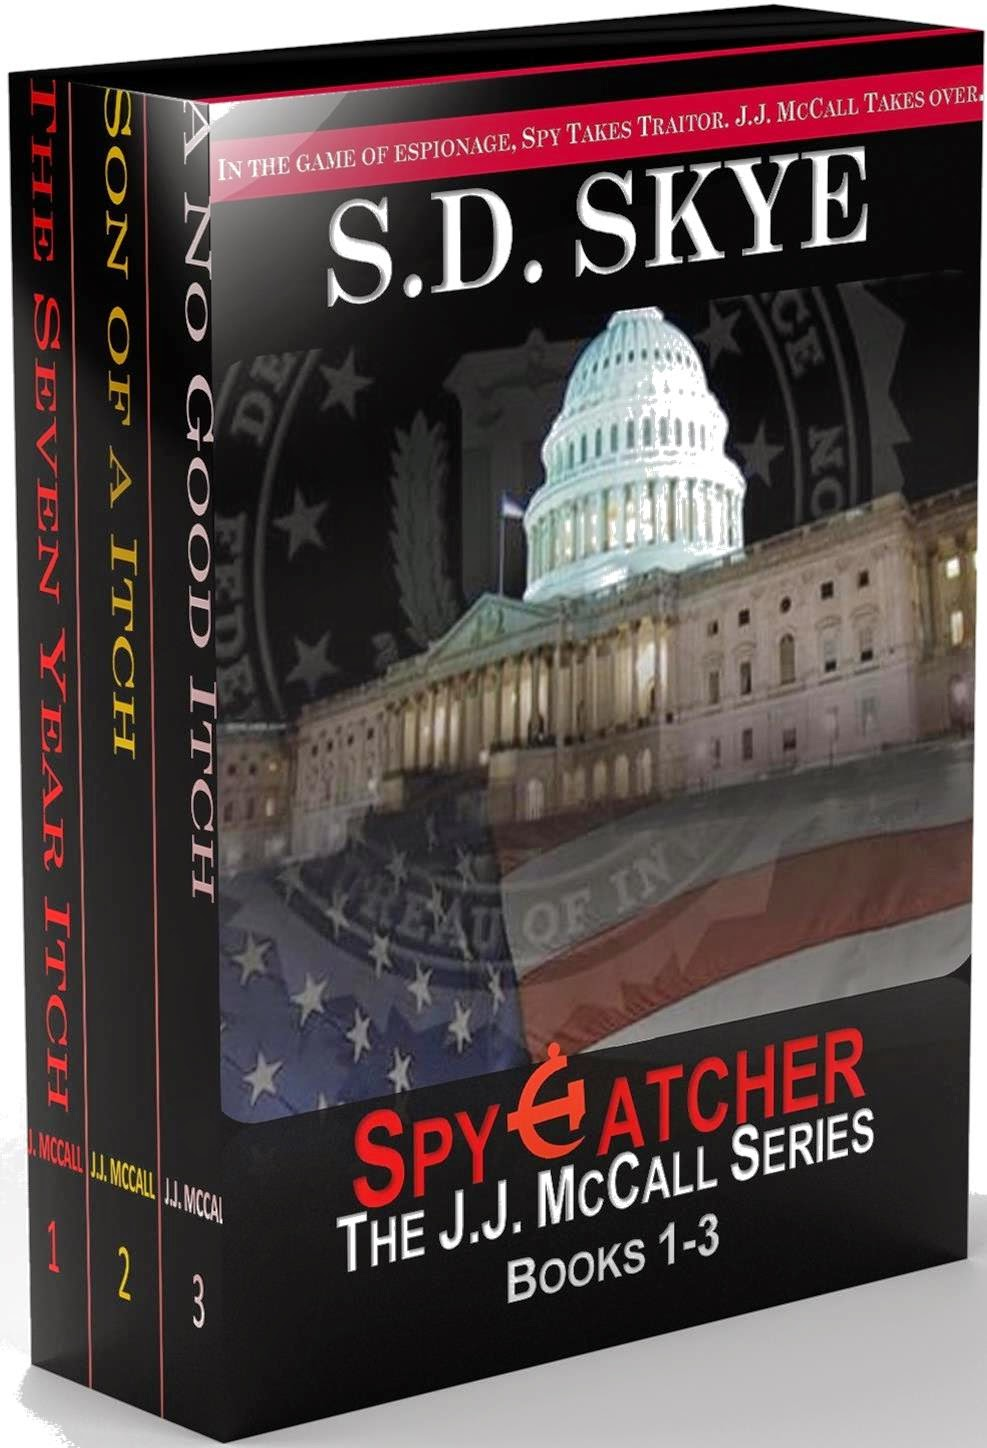 SpyCatcher: J.J. McCall (Books 1-3)